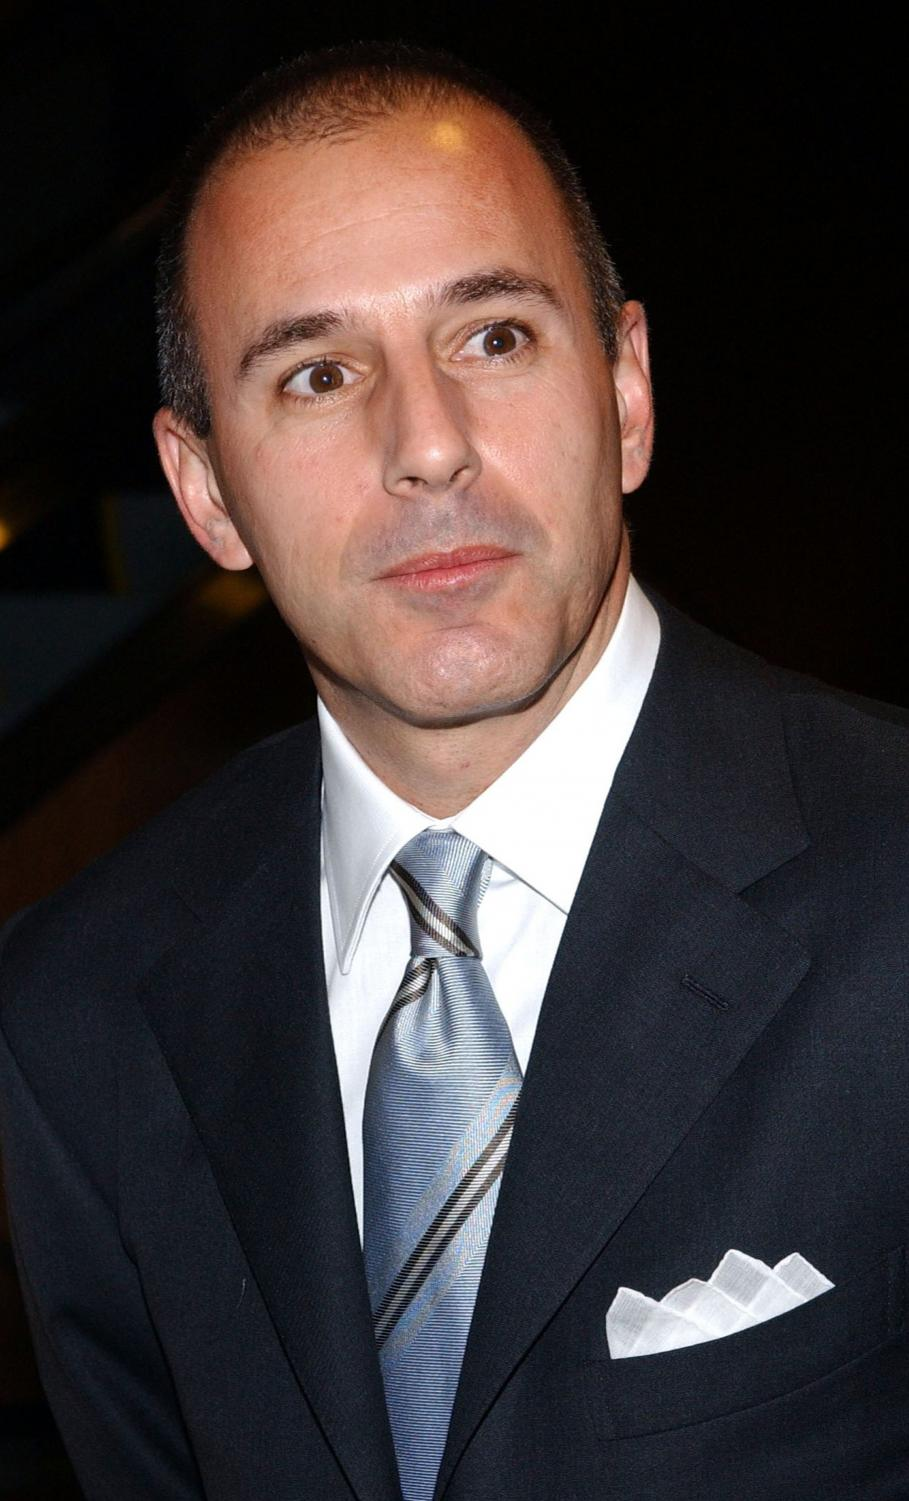 TV anchor Matt Lauer (NBC's Today show) is photographed as he arrives at the